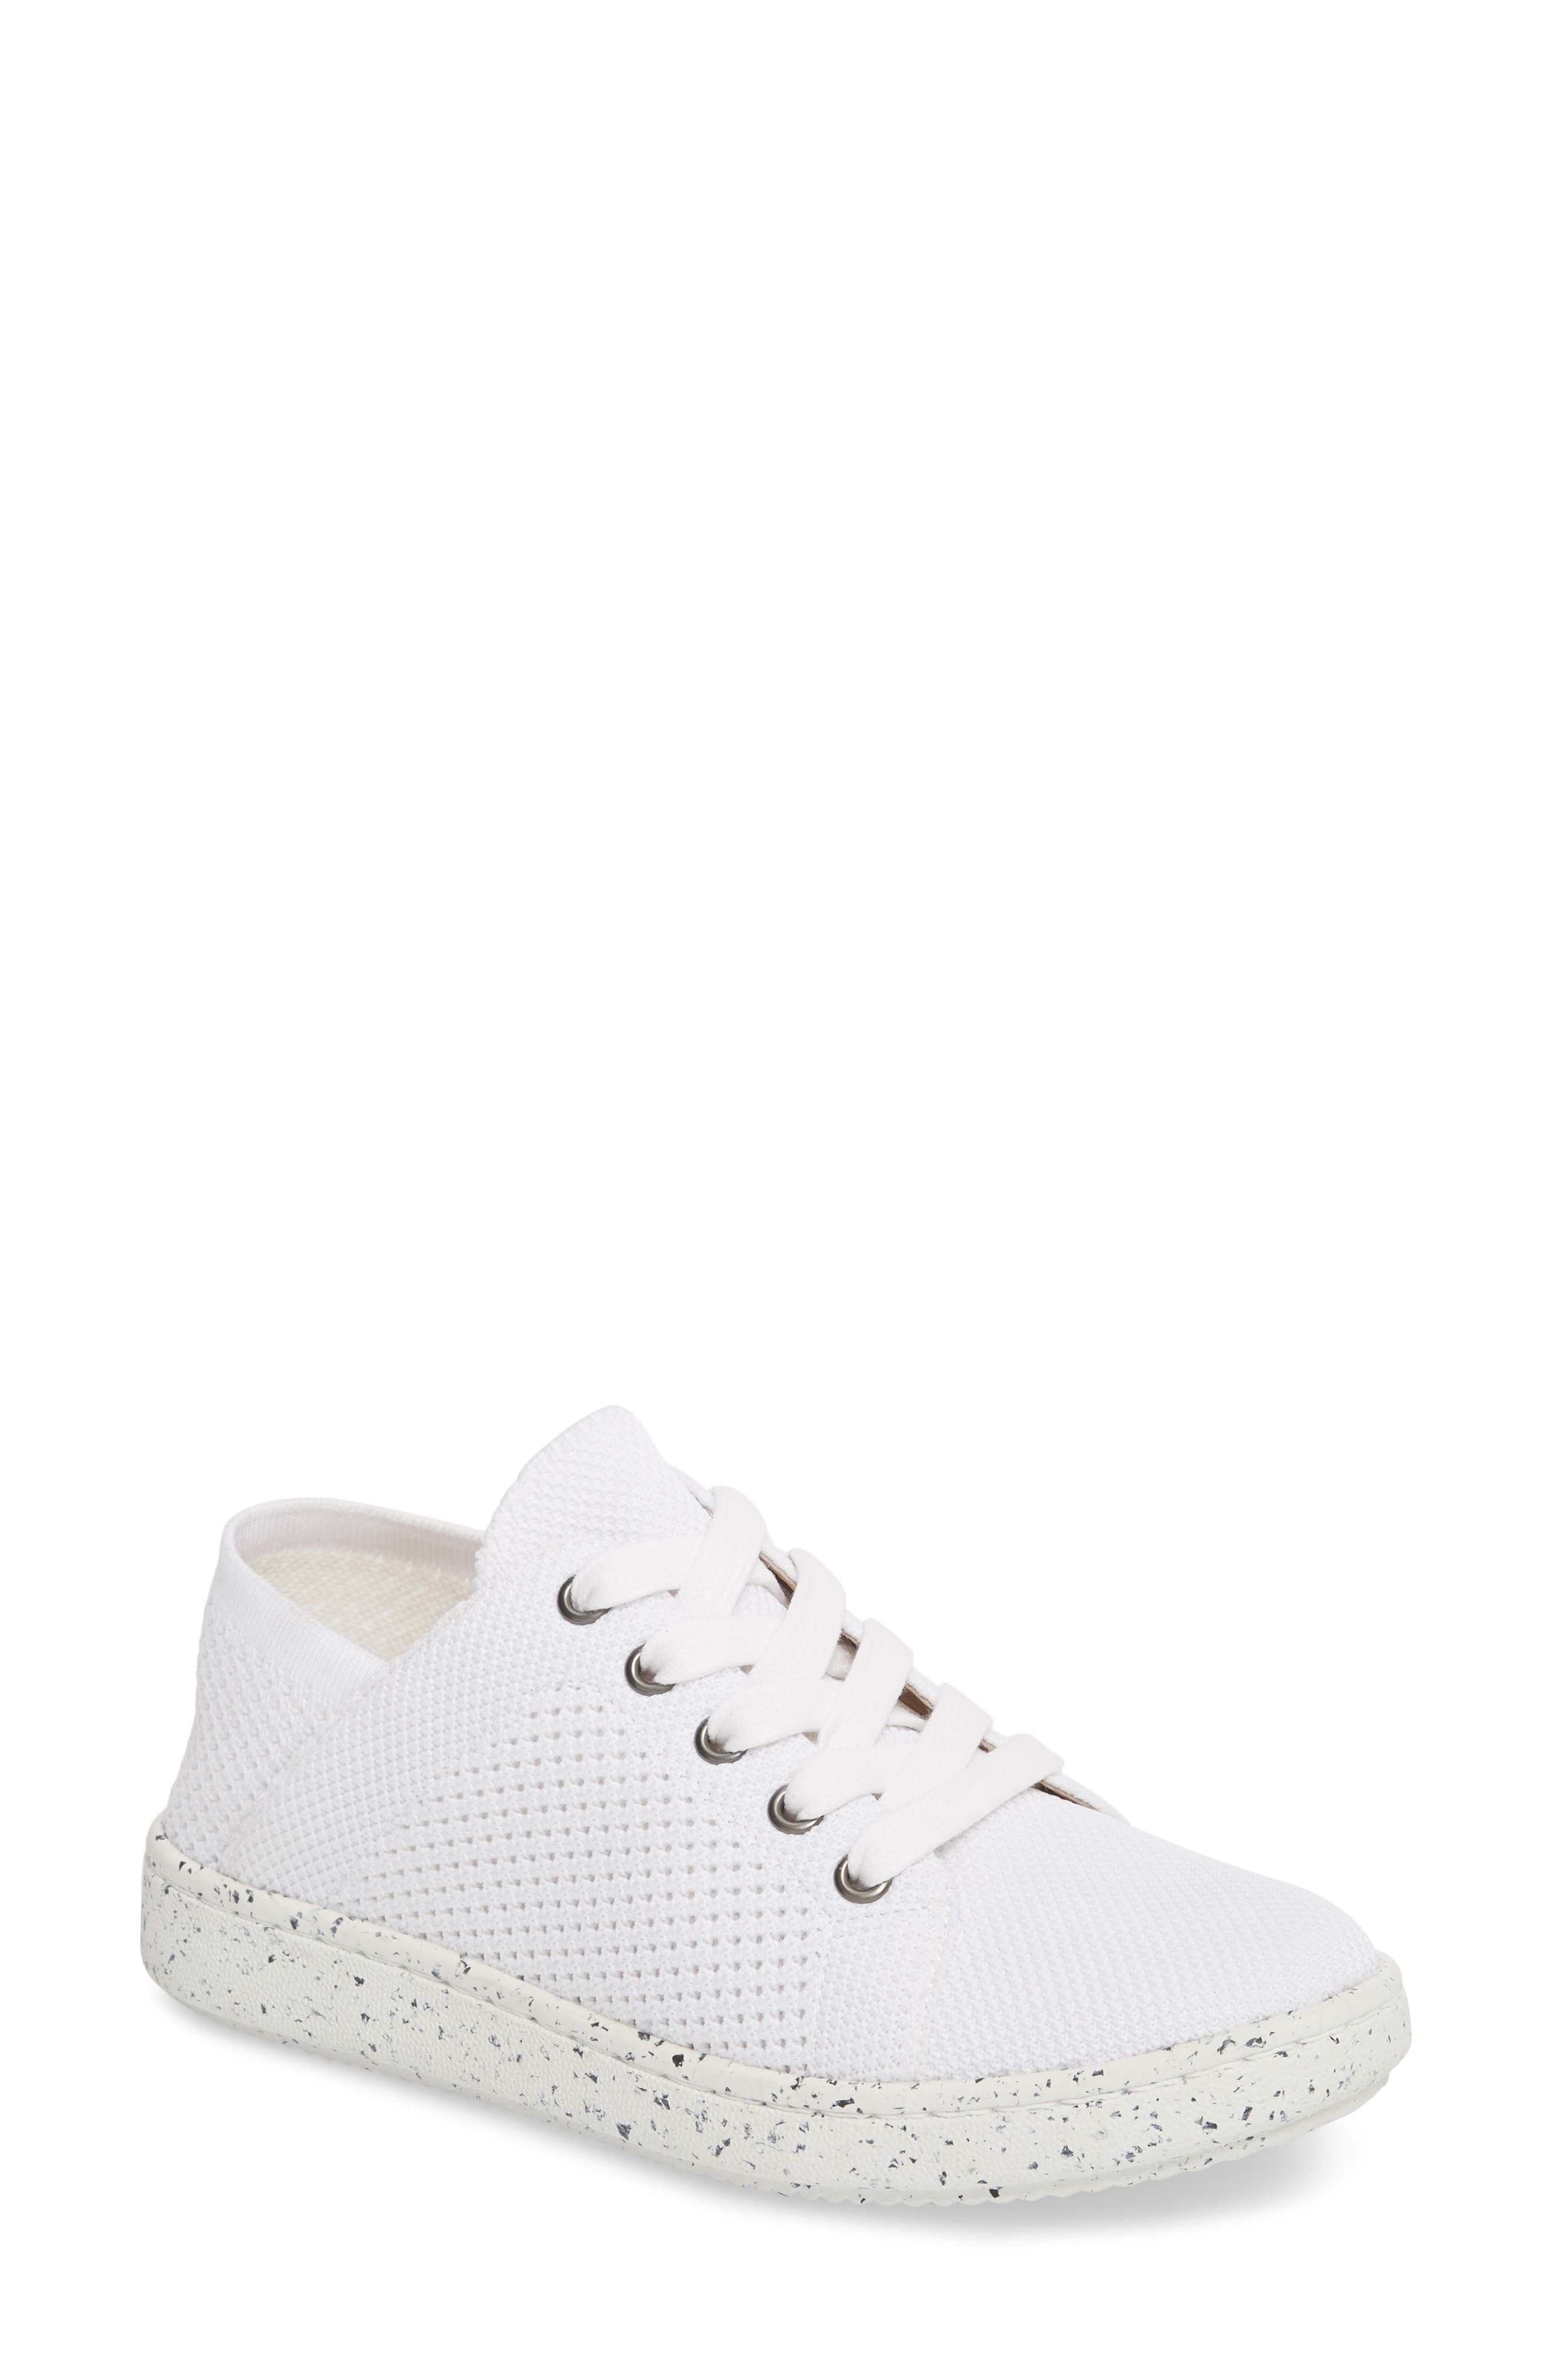 Clifton Sneaker,                         Main,                         color, White Fabric